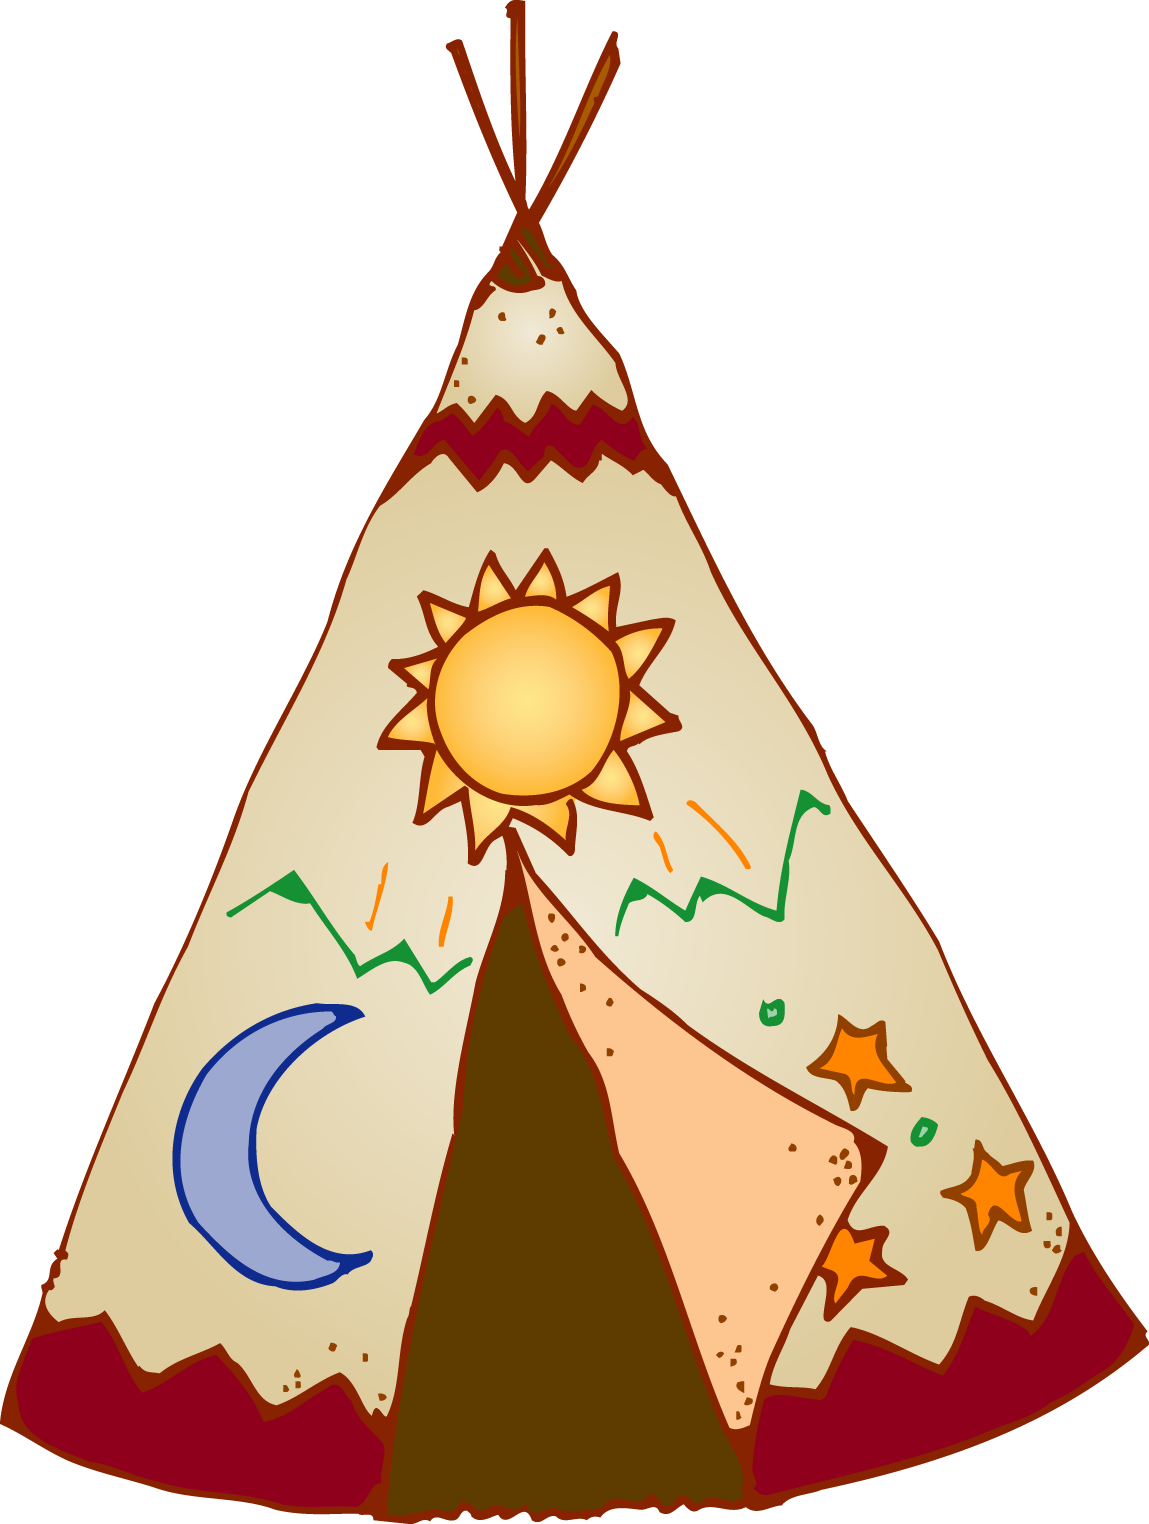 tipi clipart free download best tipi clipart on native american clip art free printable native american clip art free printable